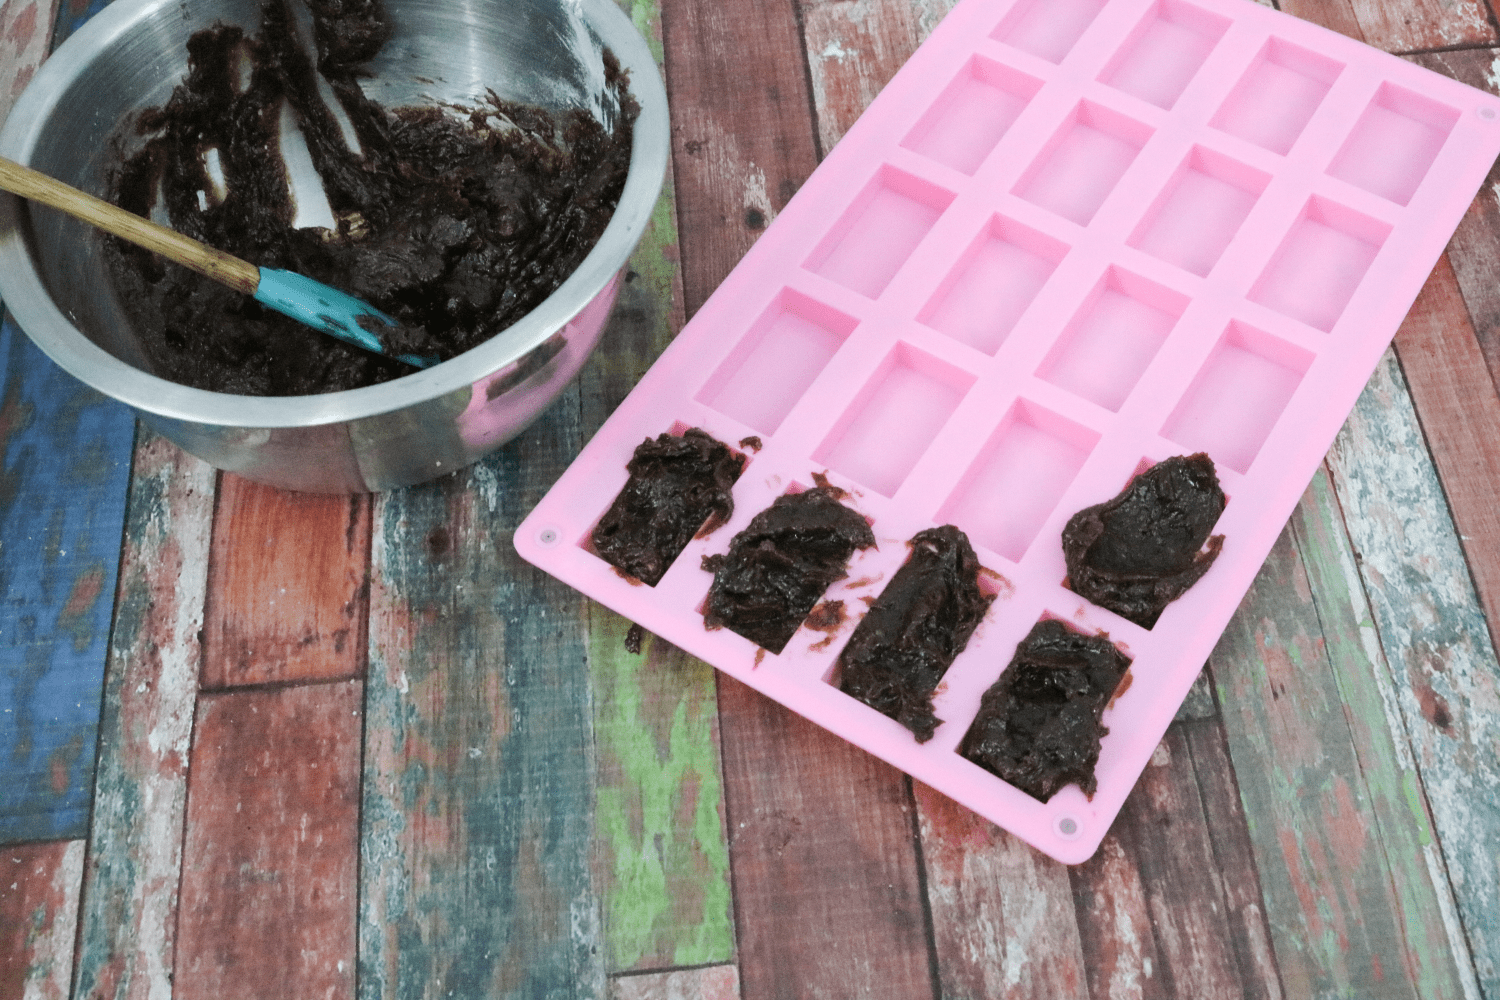 Pink silicone mold being filled with homemade snickers base with more mix in a steel bowl beside it